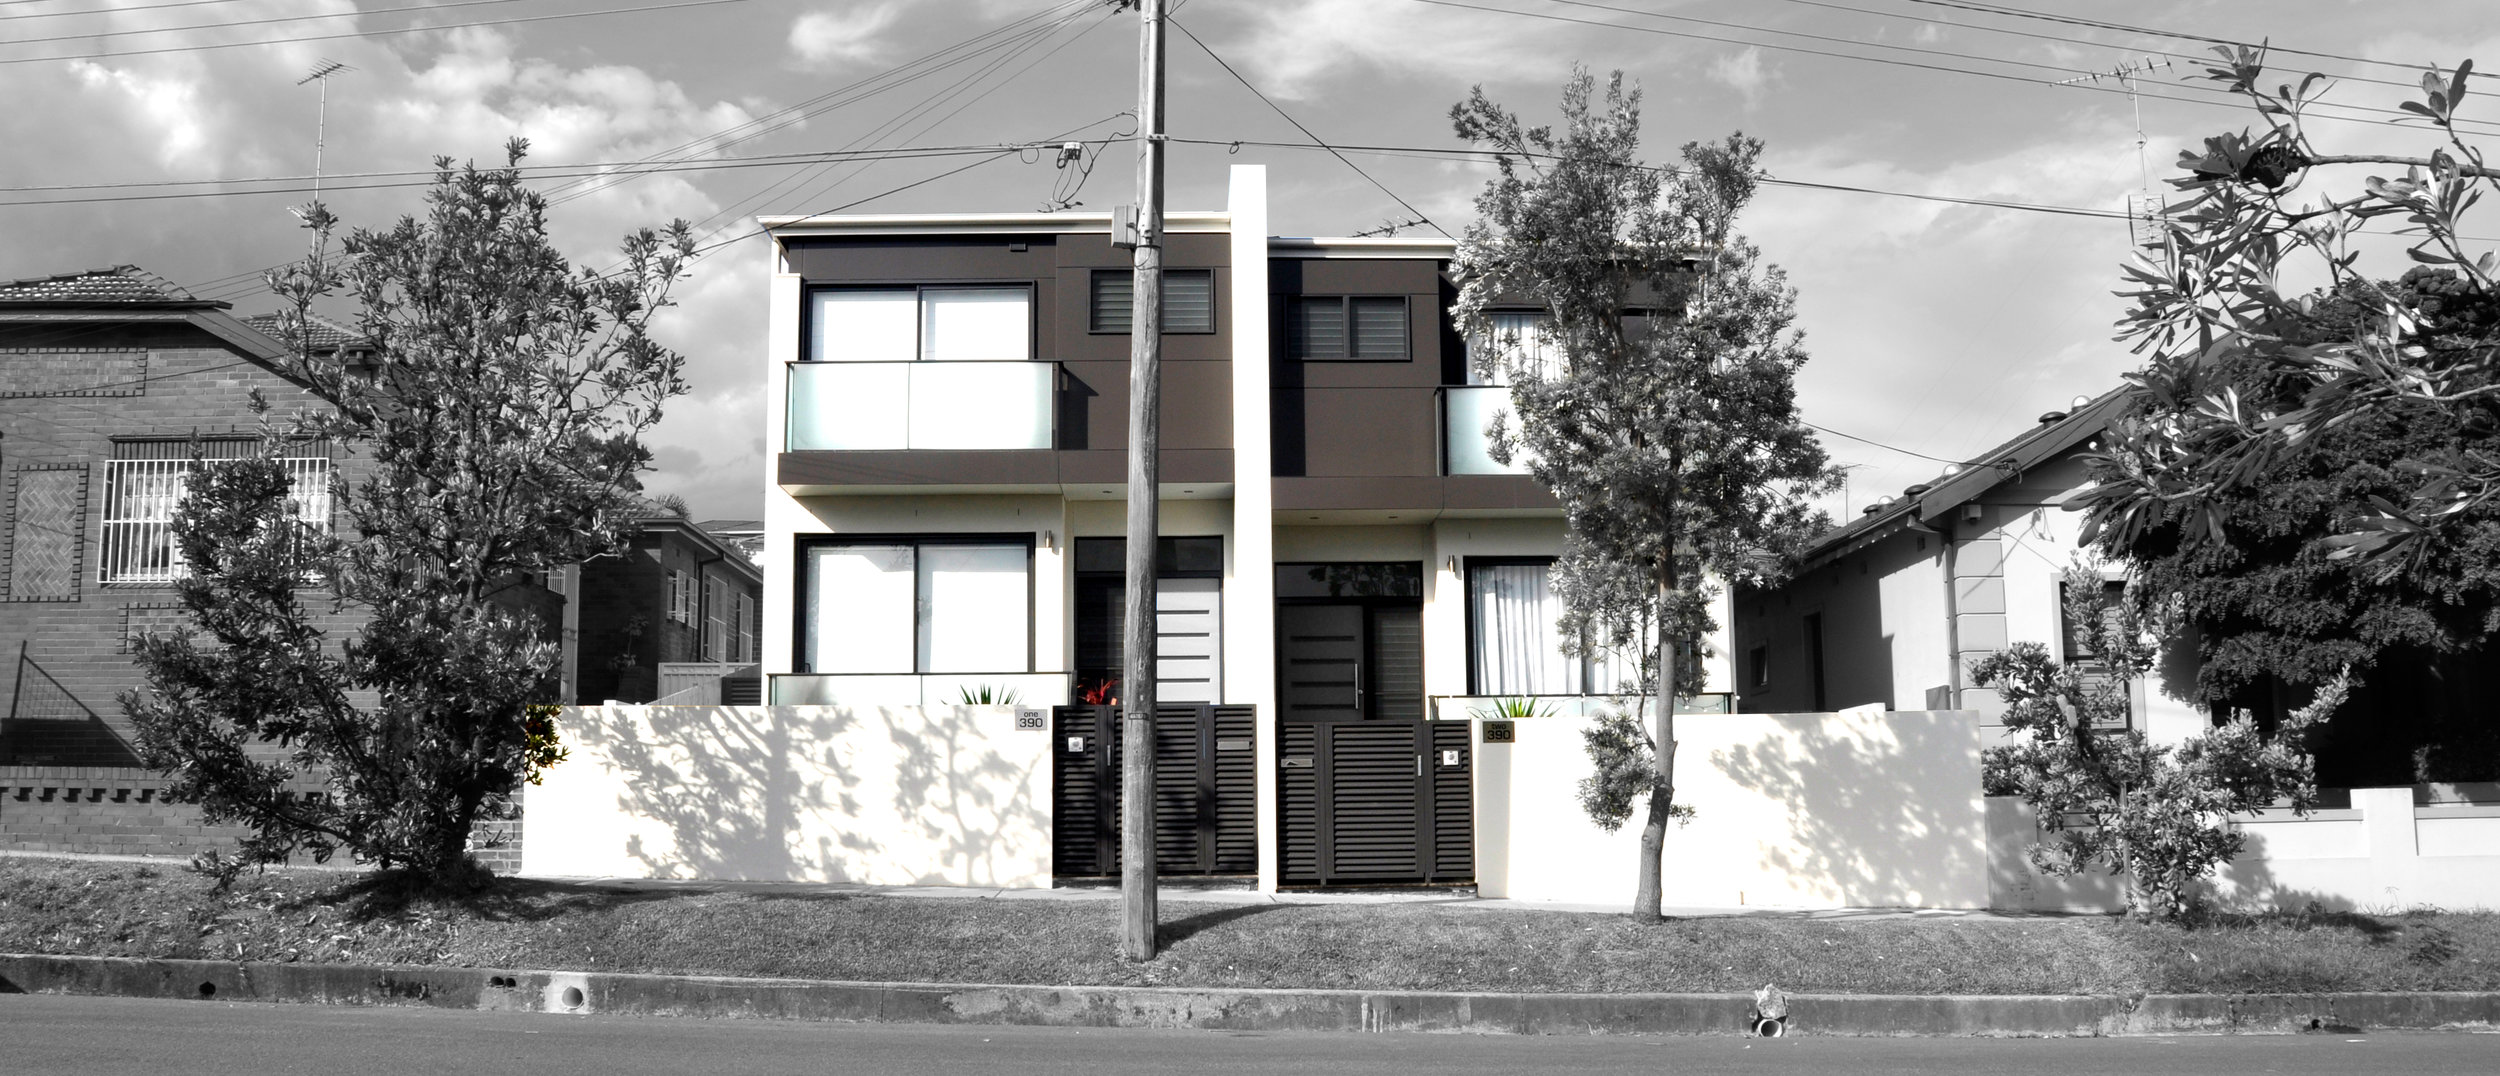 Duplex at Maroubra Beach